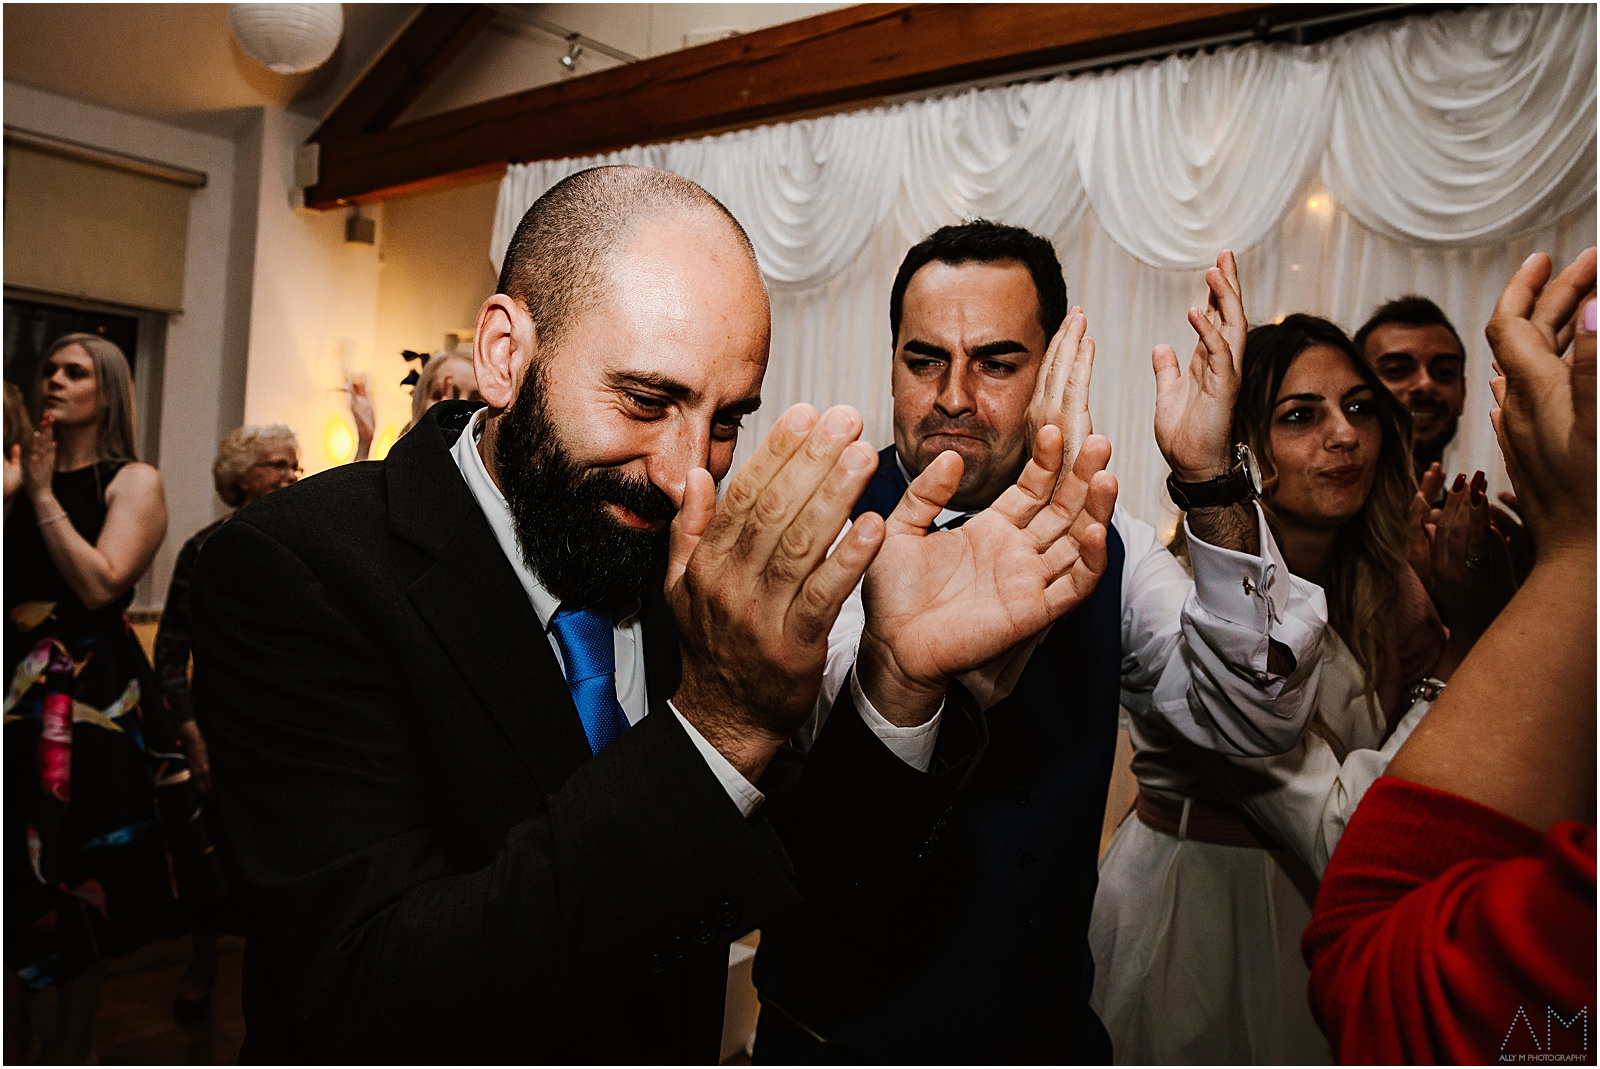 Wedding guest clapping on dance floor